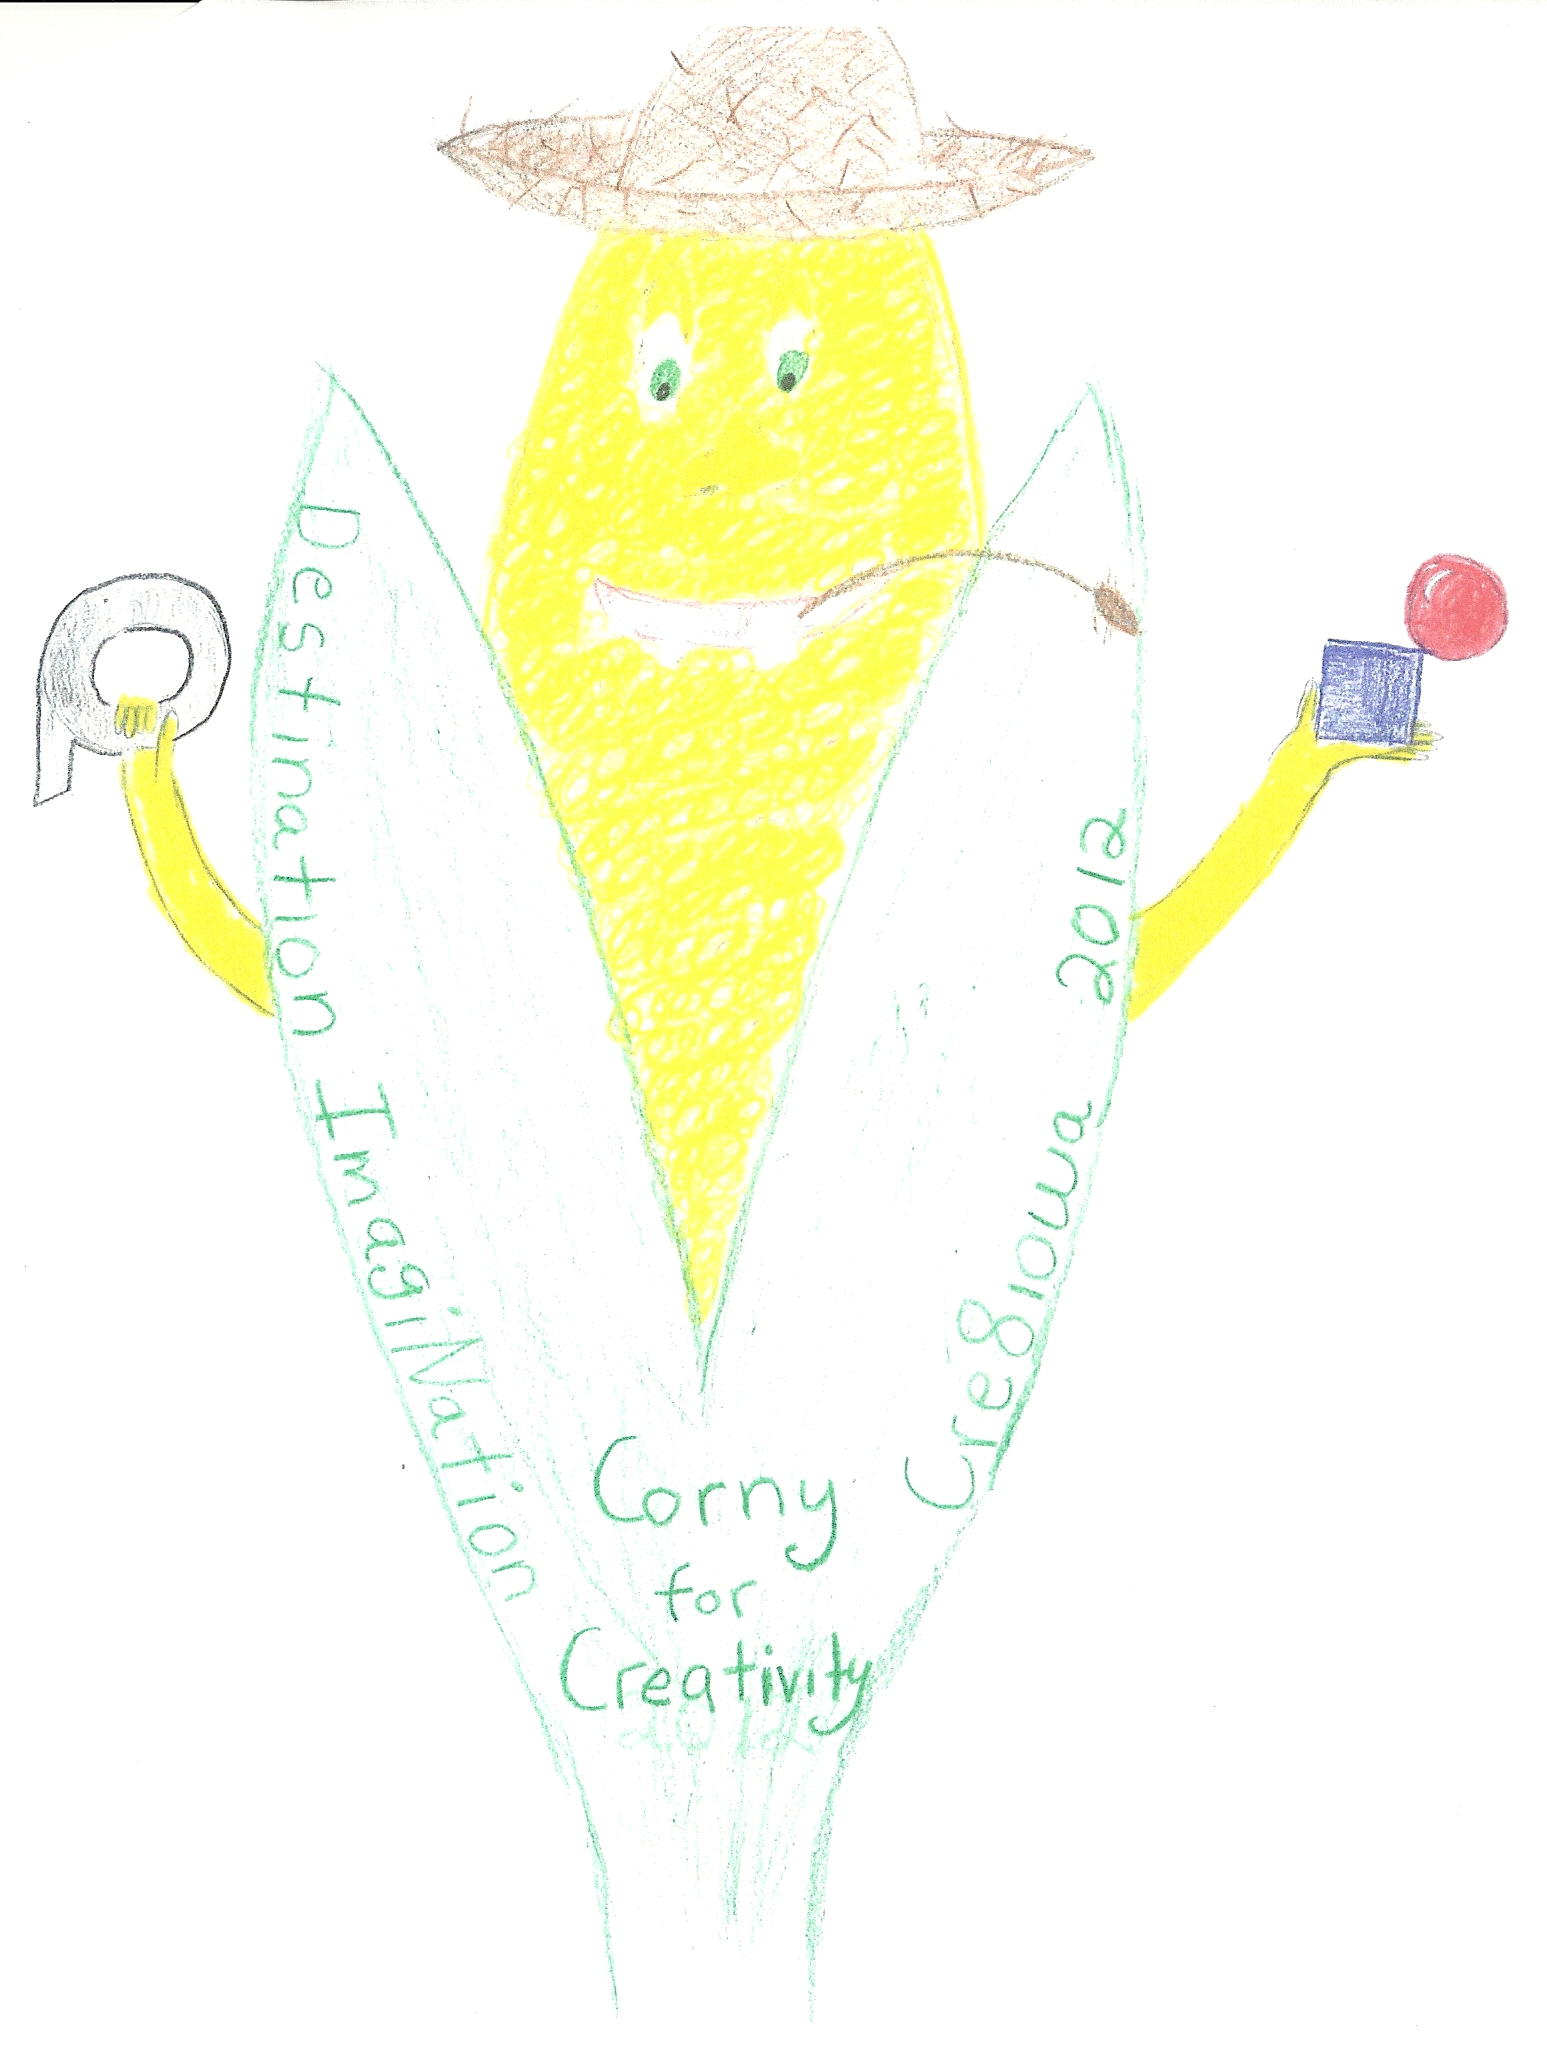 Design 8 - Corny for Creativity